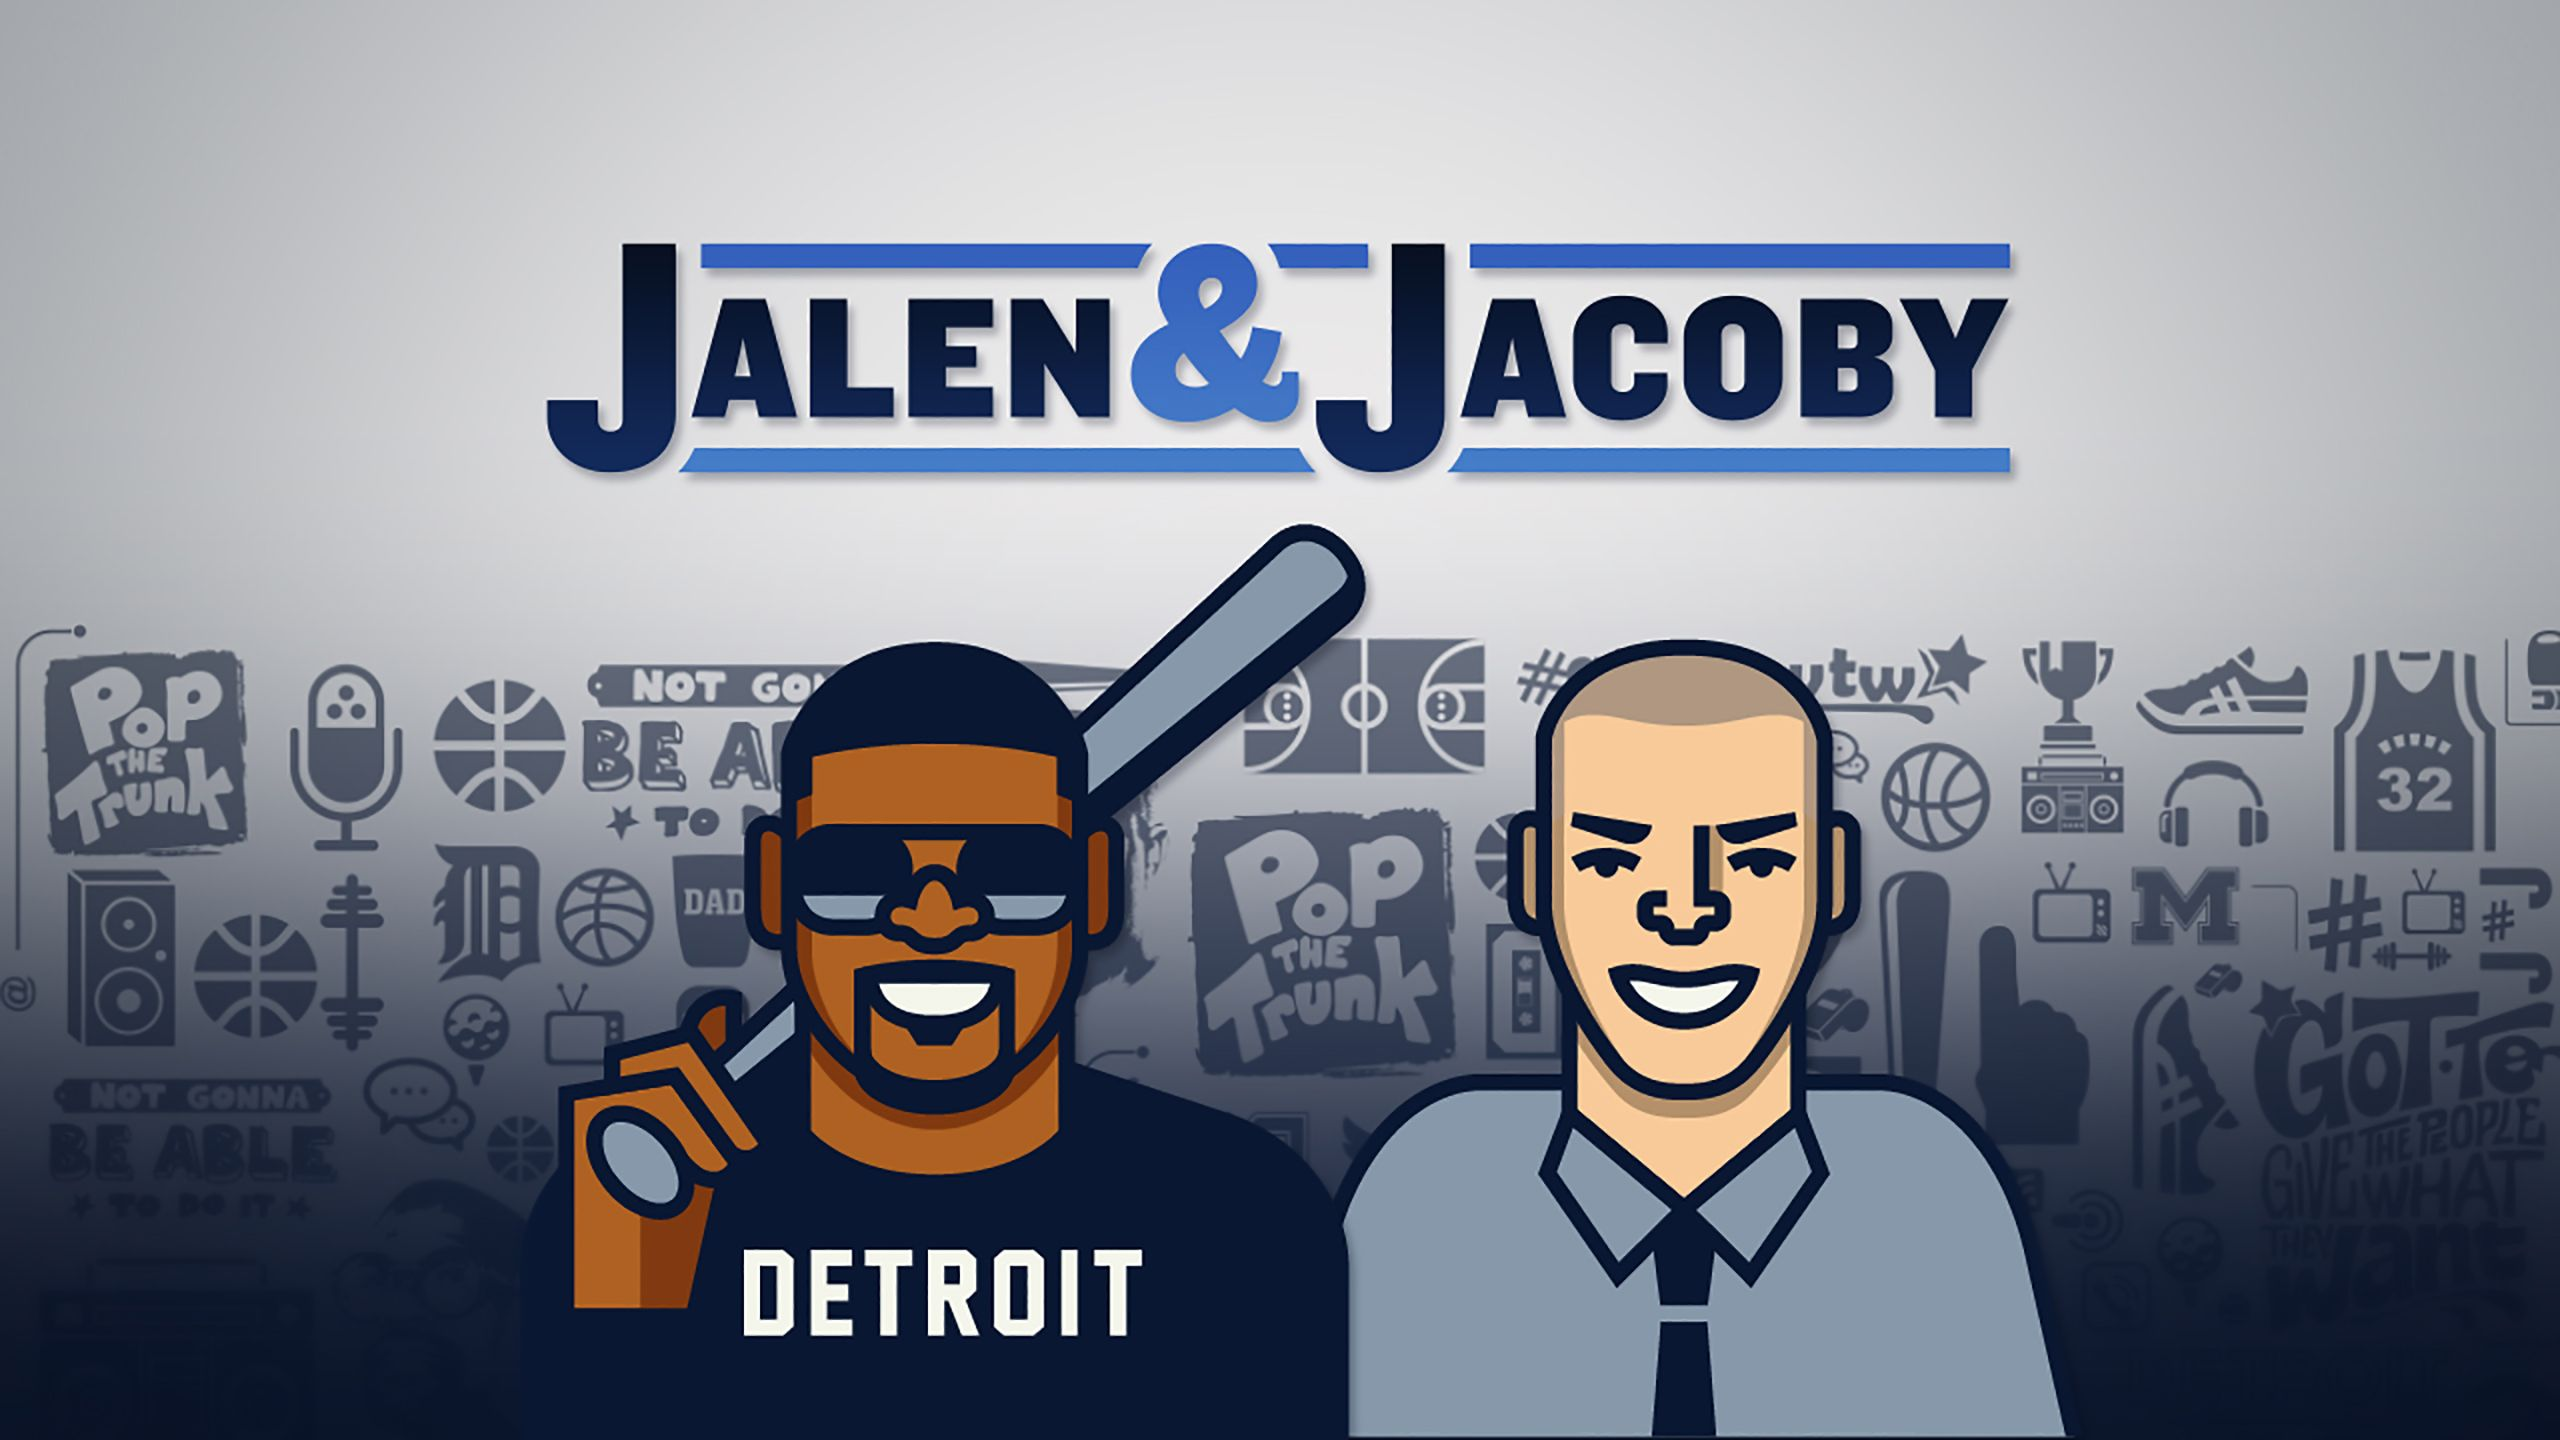 Fri, 5/25 - Jalen & Jacoby